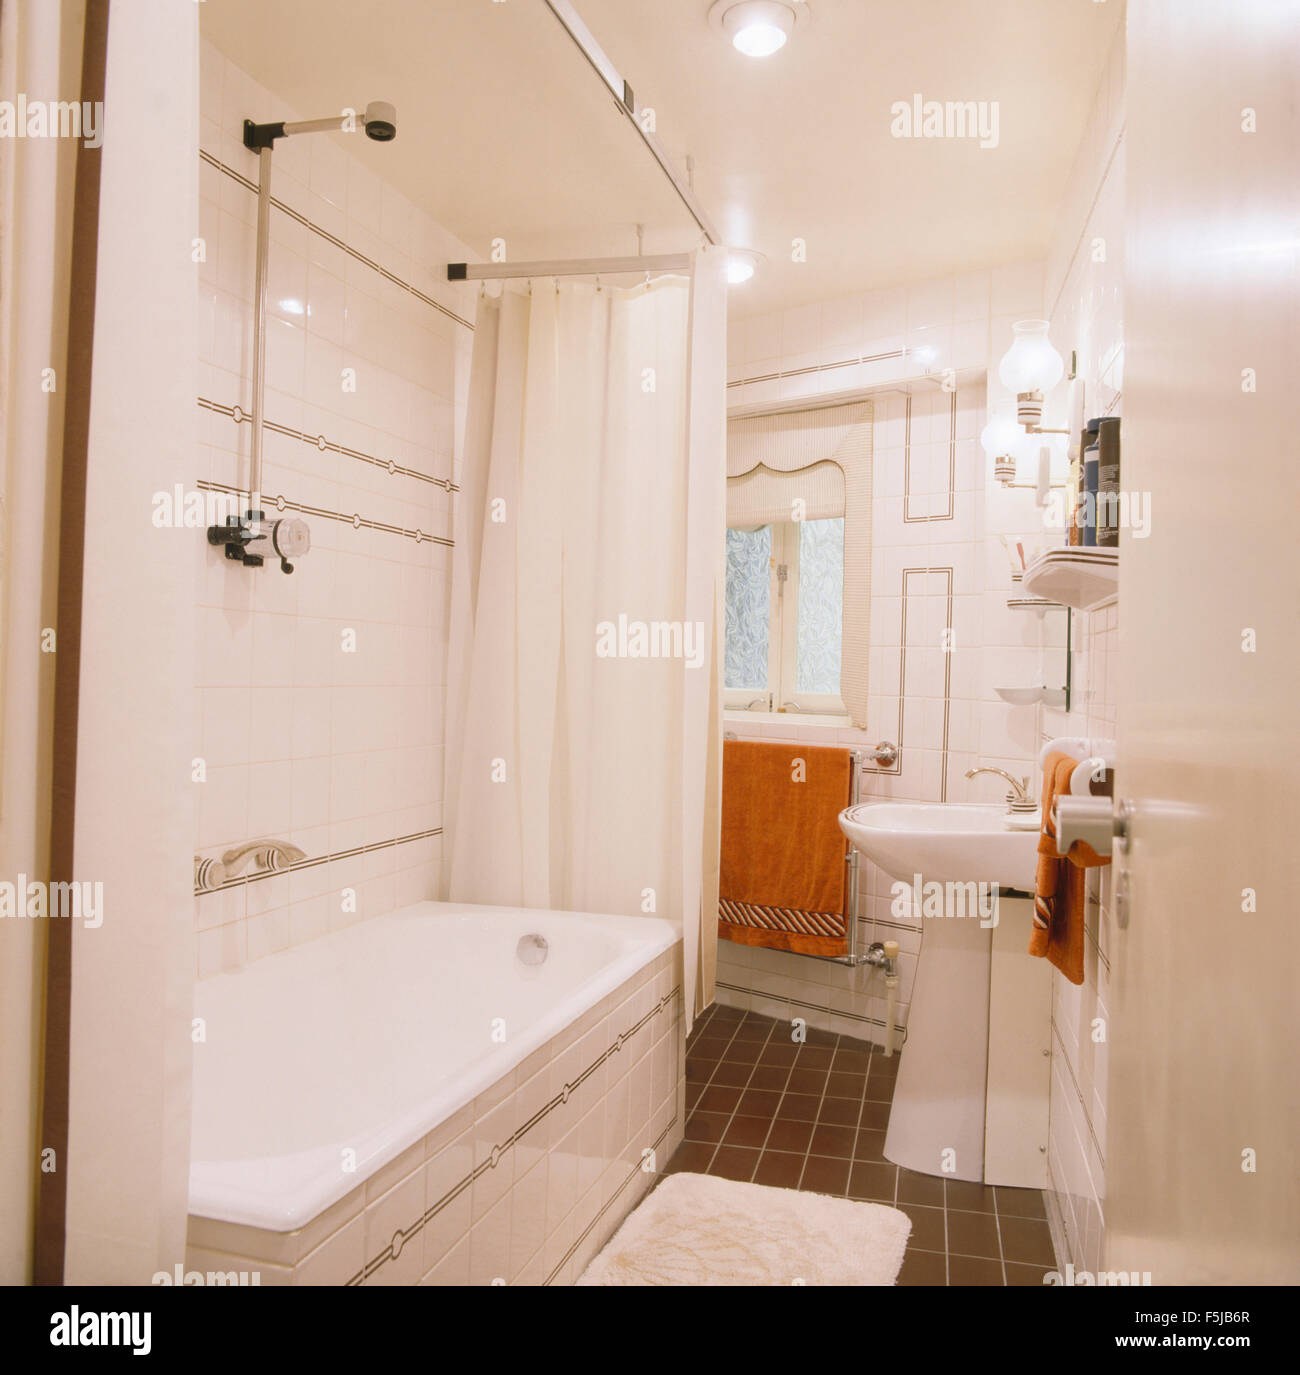 Chrome shower above bath in white shower curtains in a white ...